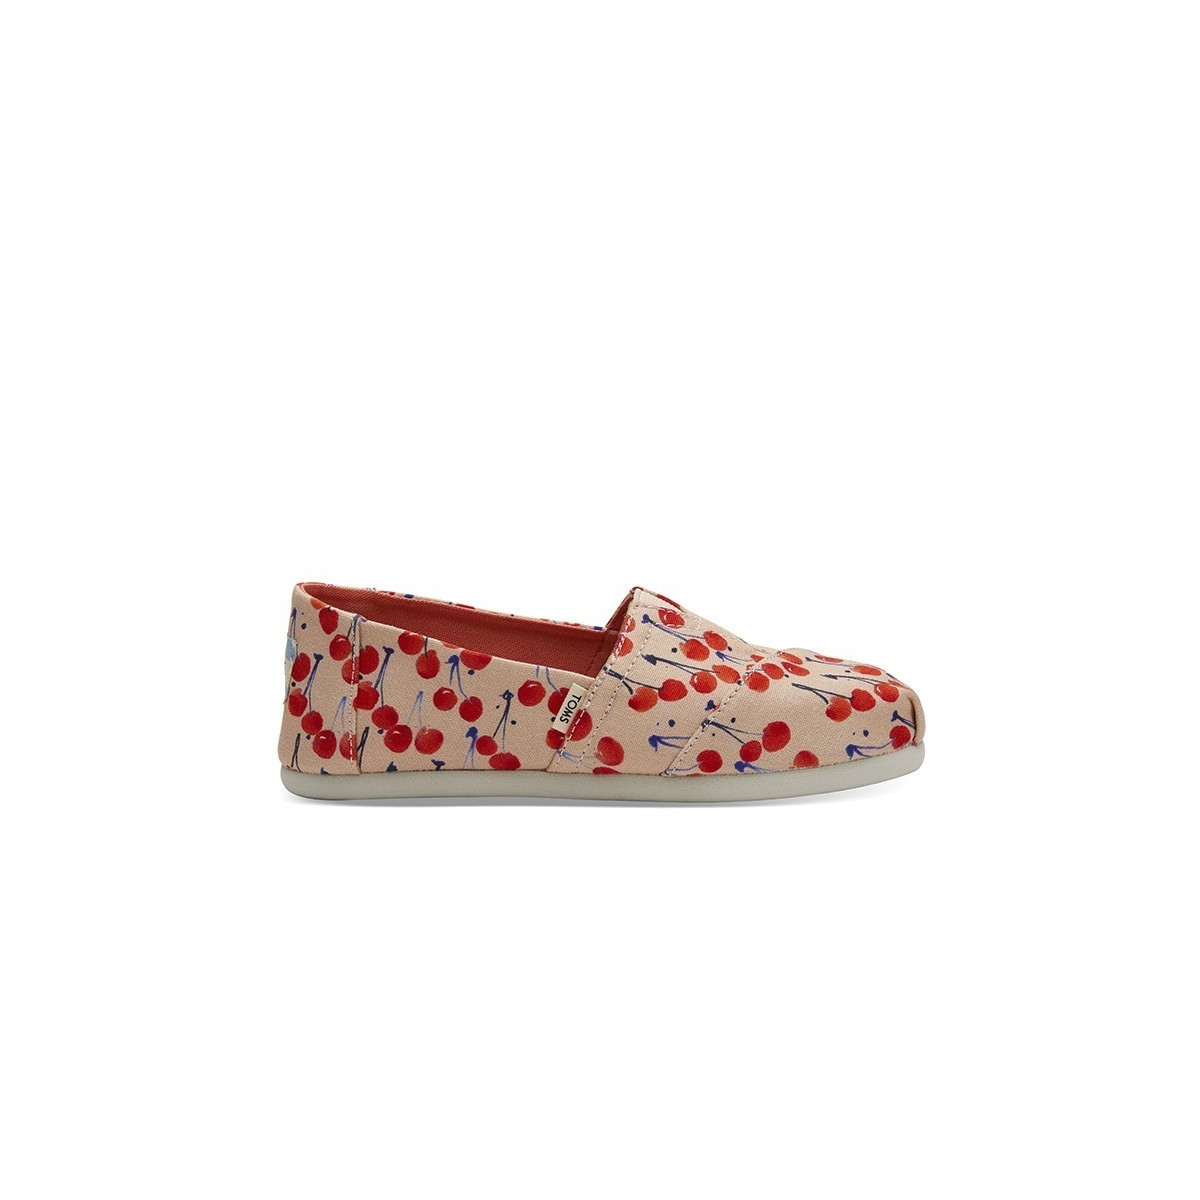 Basket Toms Classic toile Cherry